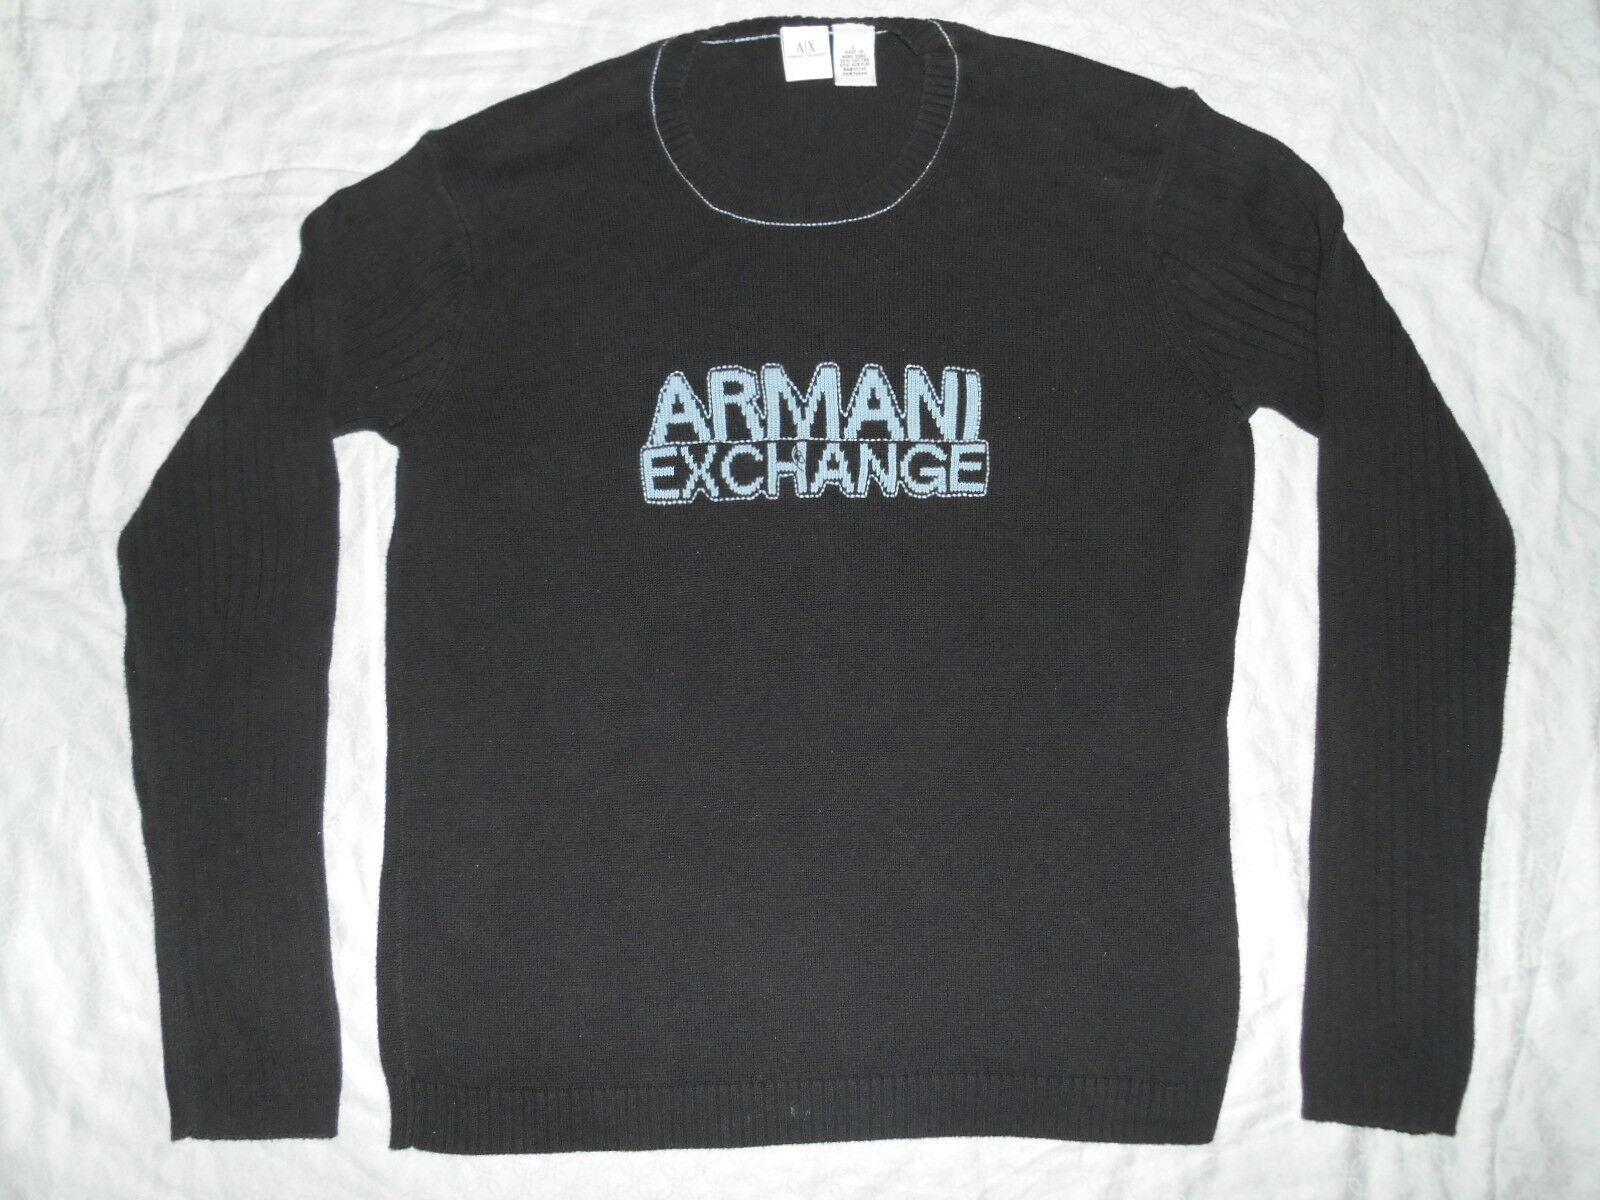 ARMANI EXCHANGE A X EMBROIDERED POLO RUGBY SHIRT SIZE LARGE  EXQUISITE QUALITY